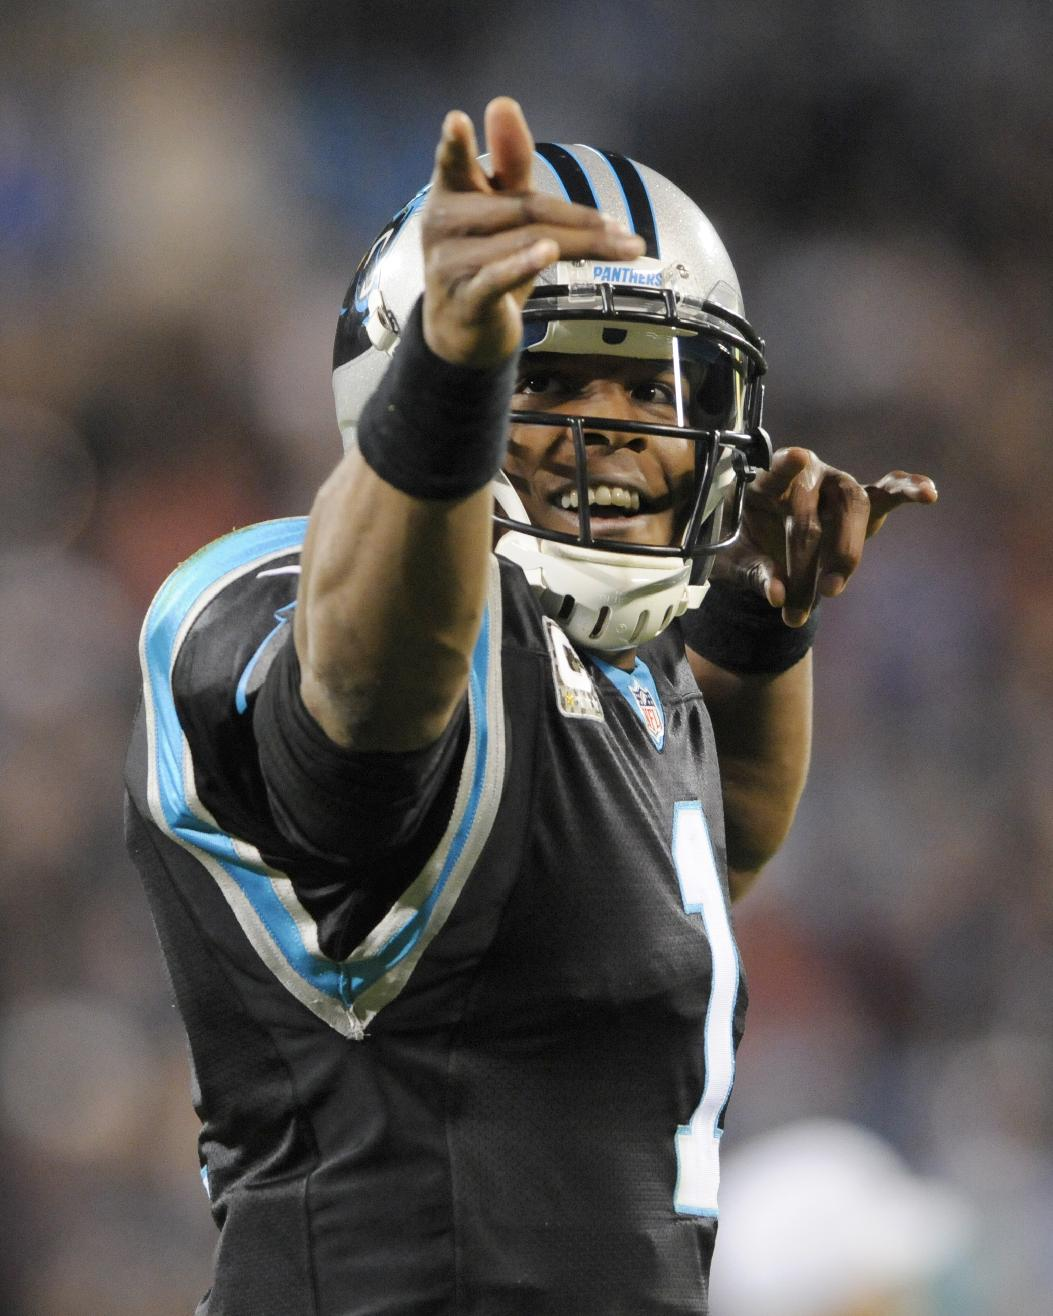 Carolina Panthers' Cam Newton (1) reacts after making a first down against the New England Patriots during the first half of an NFL football game in Charlotte, N.C., Monday, Nov. 18, 2013